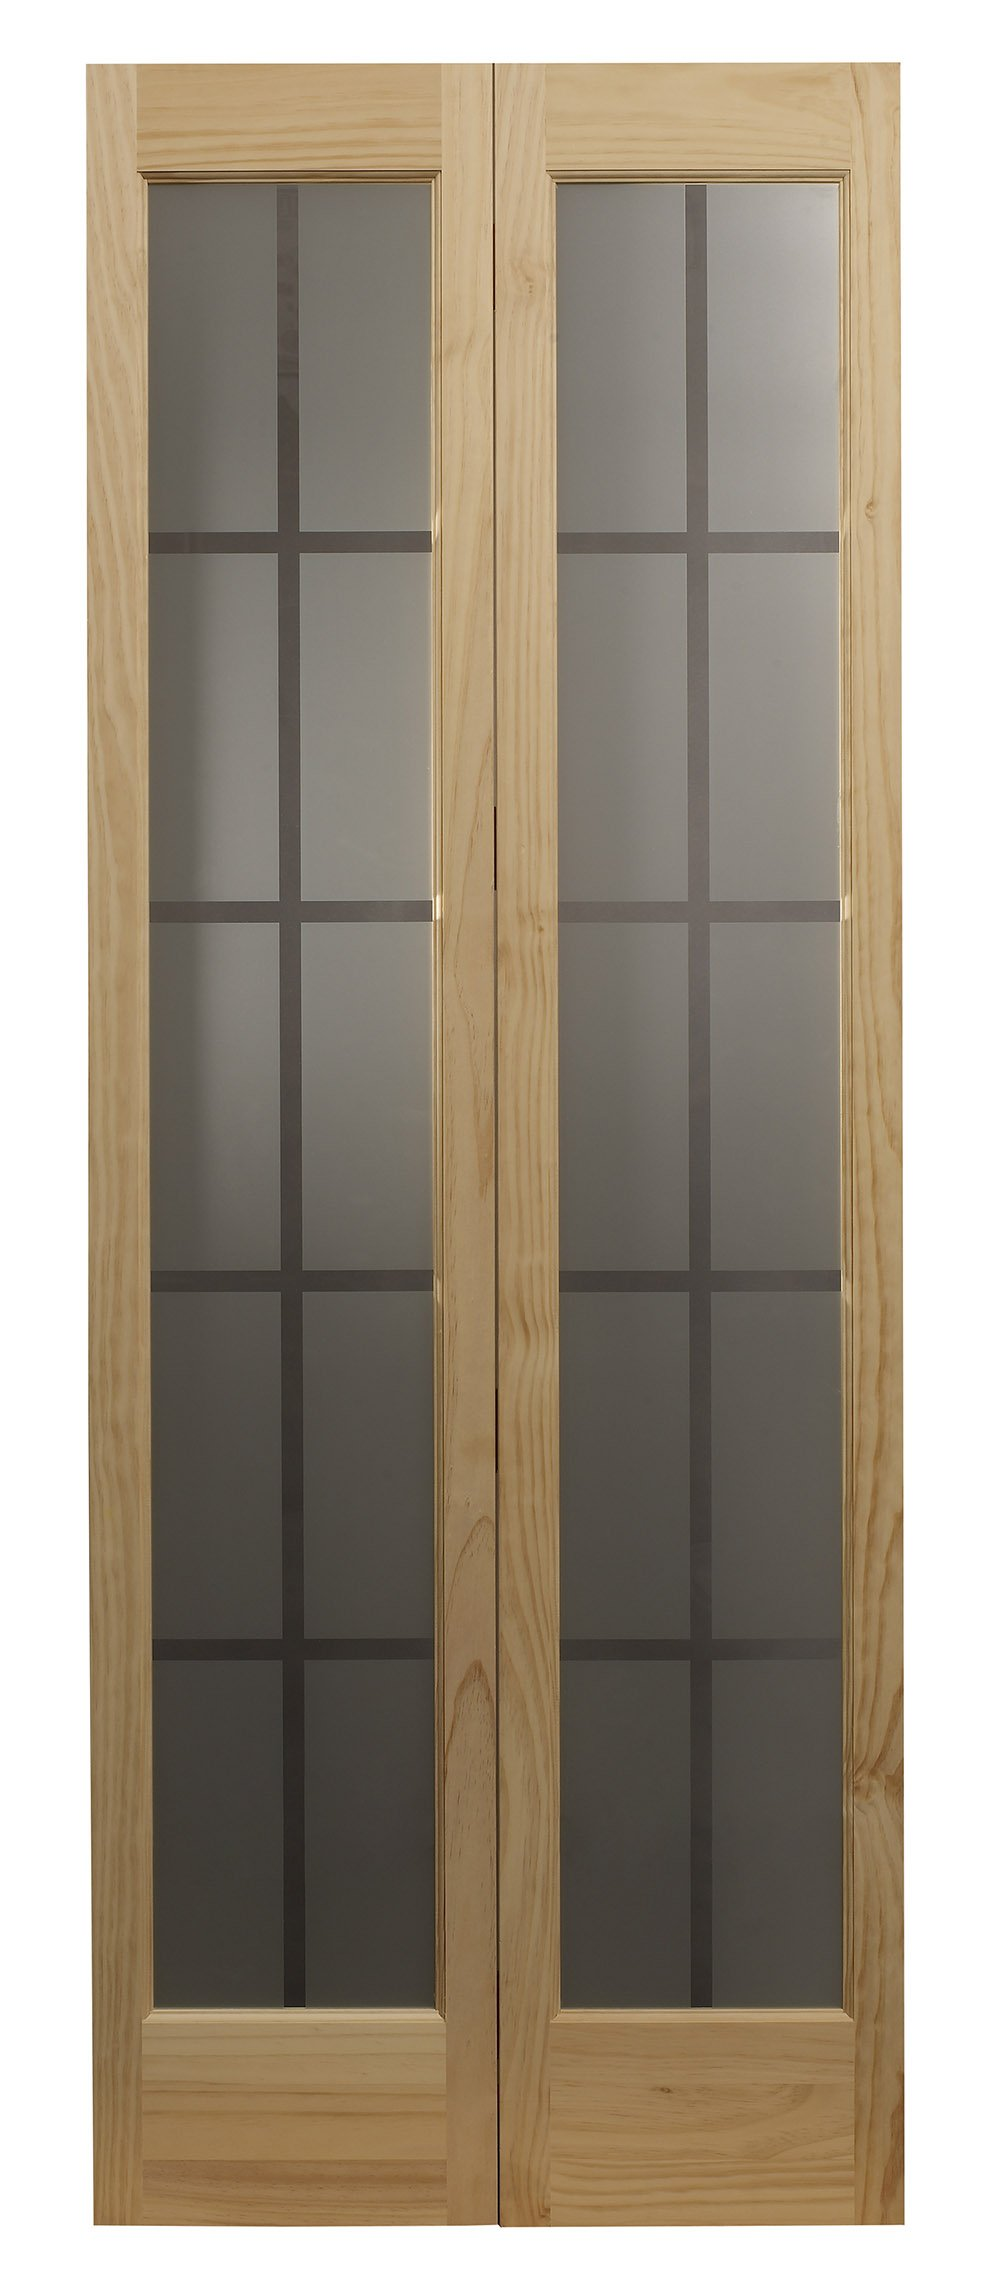 Pinecroft 837328 Mission Full Glass Bifold Interior Wood Door, 32'' x 80'', Unfinished